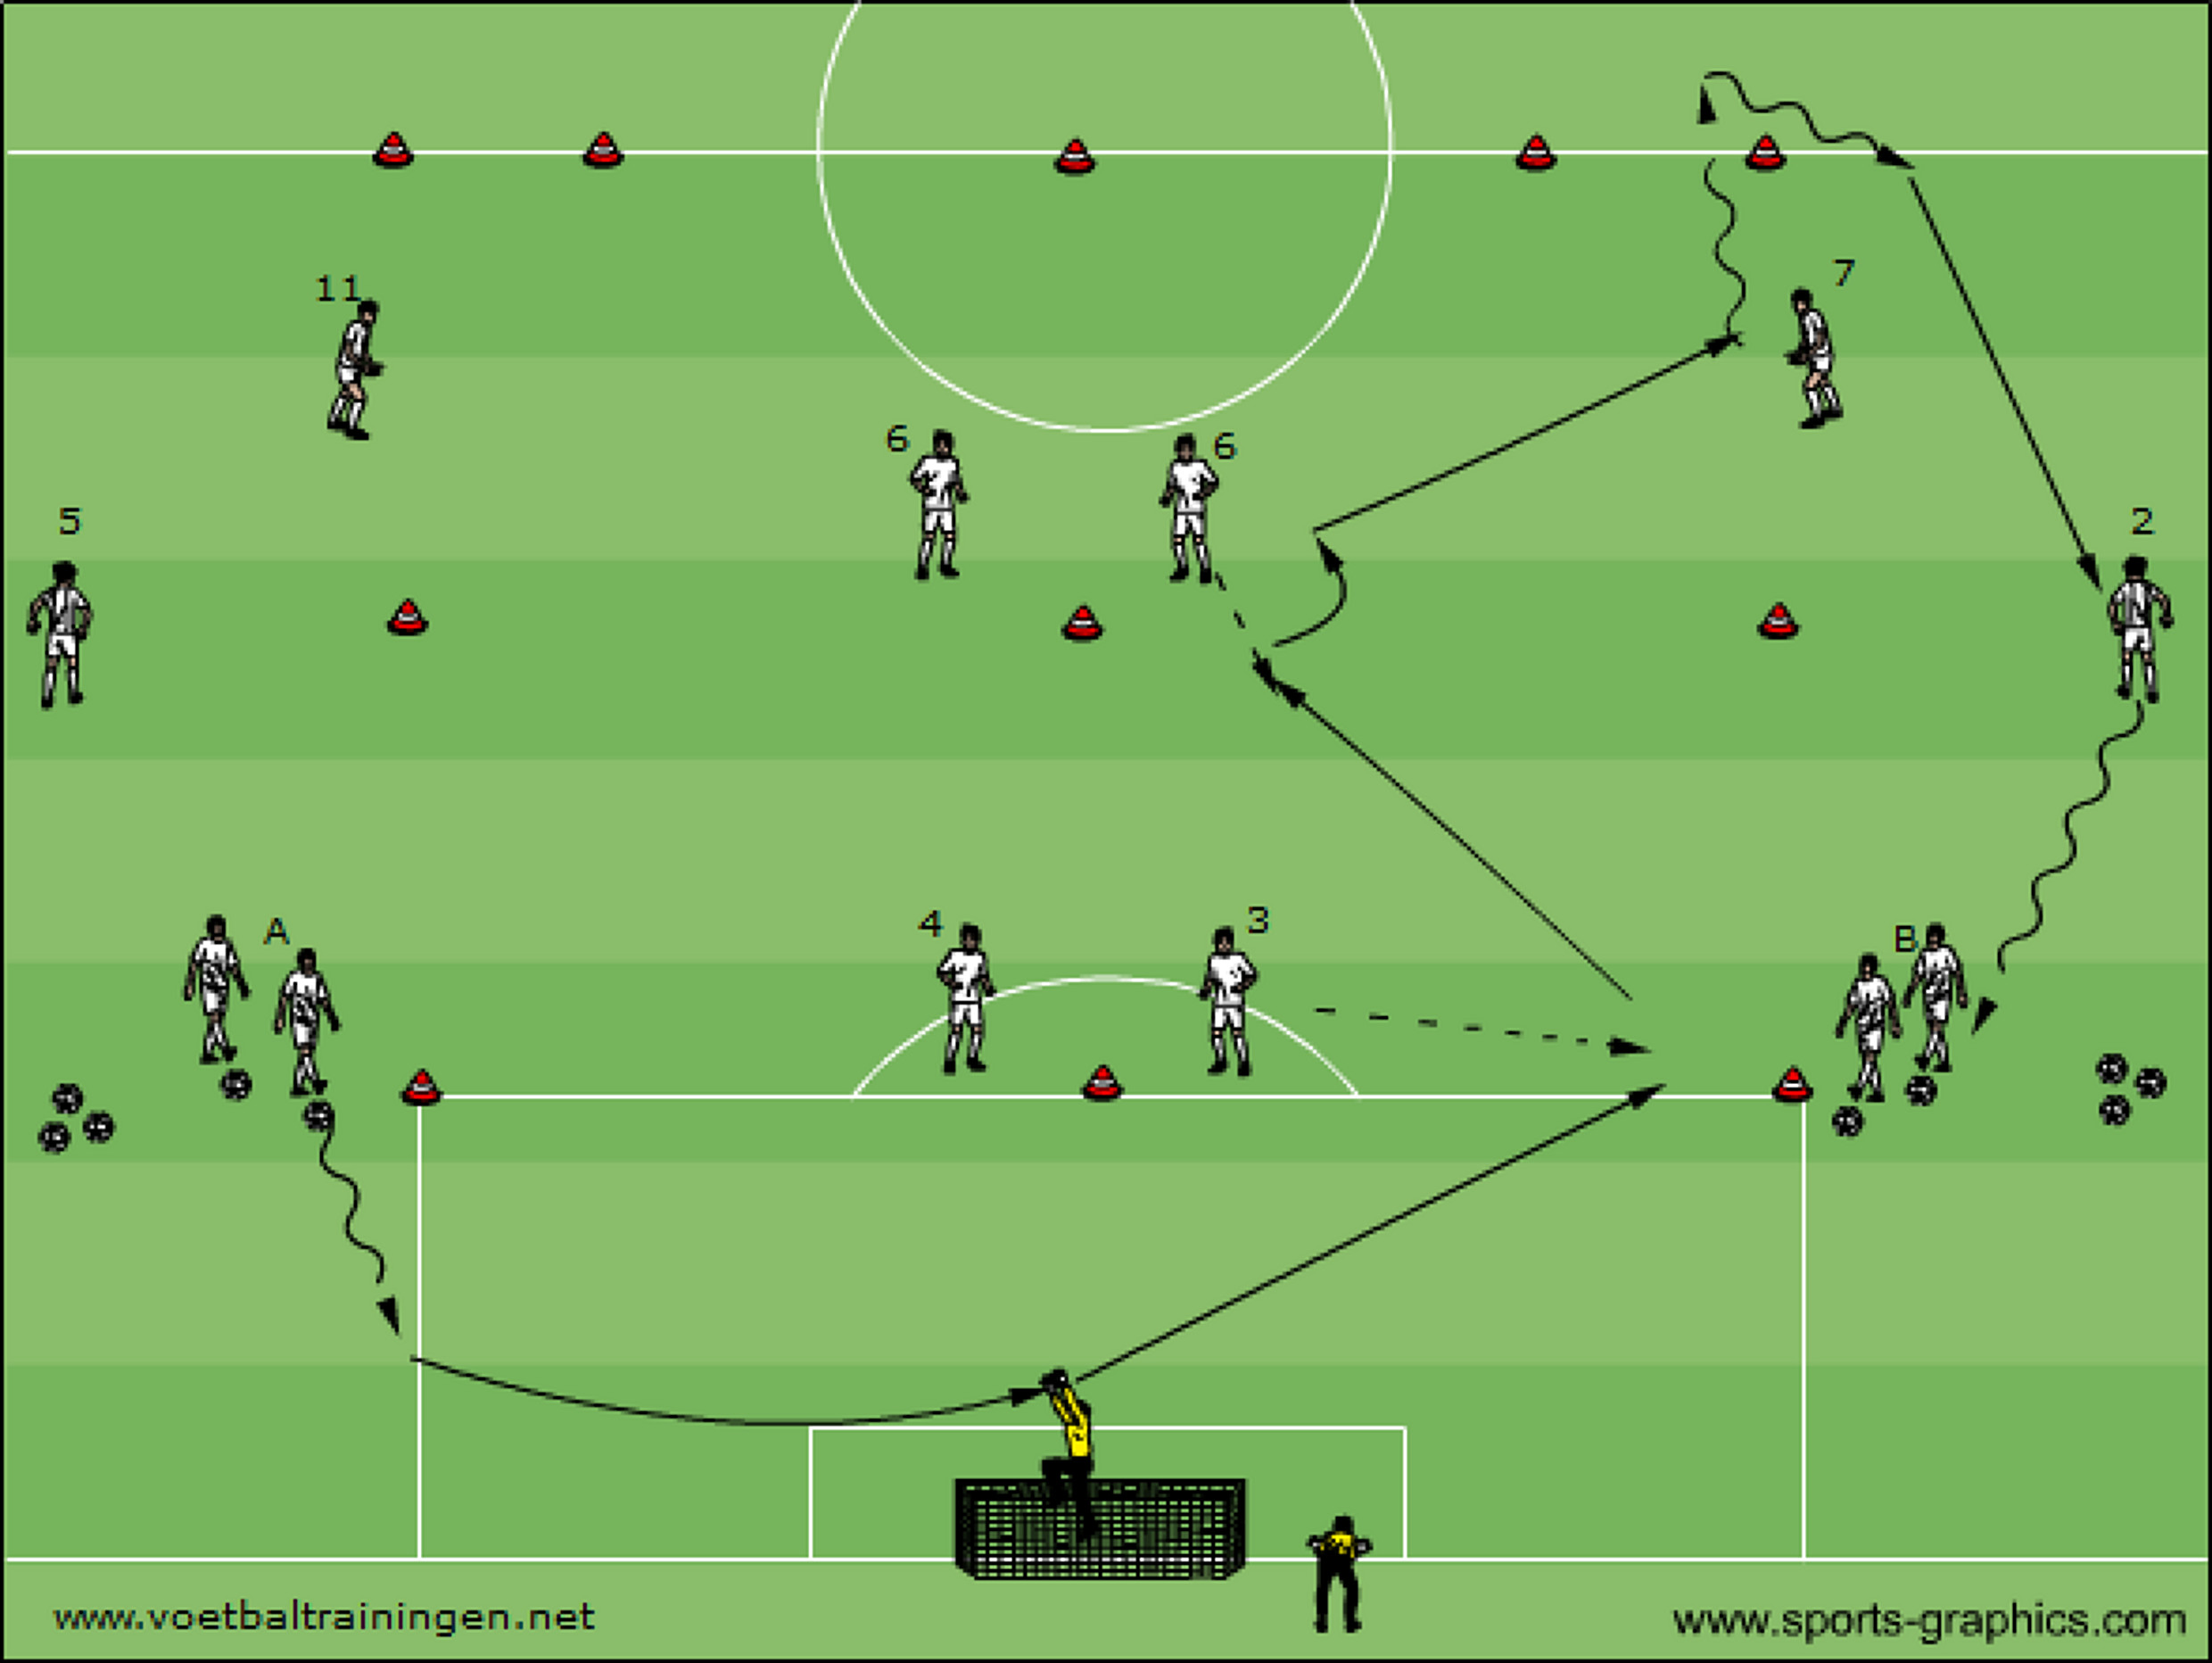 Opwarming - opbouwzone beheersen - in-out passing